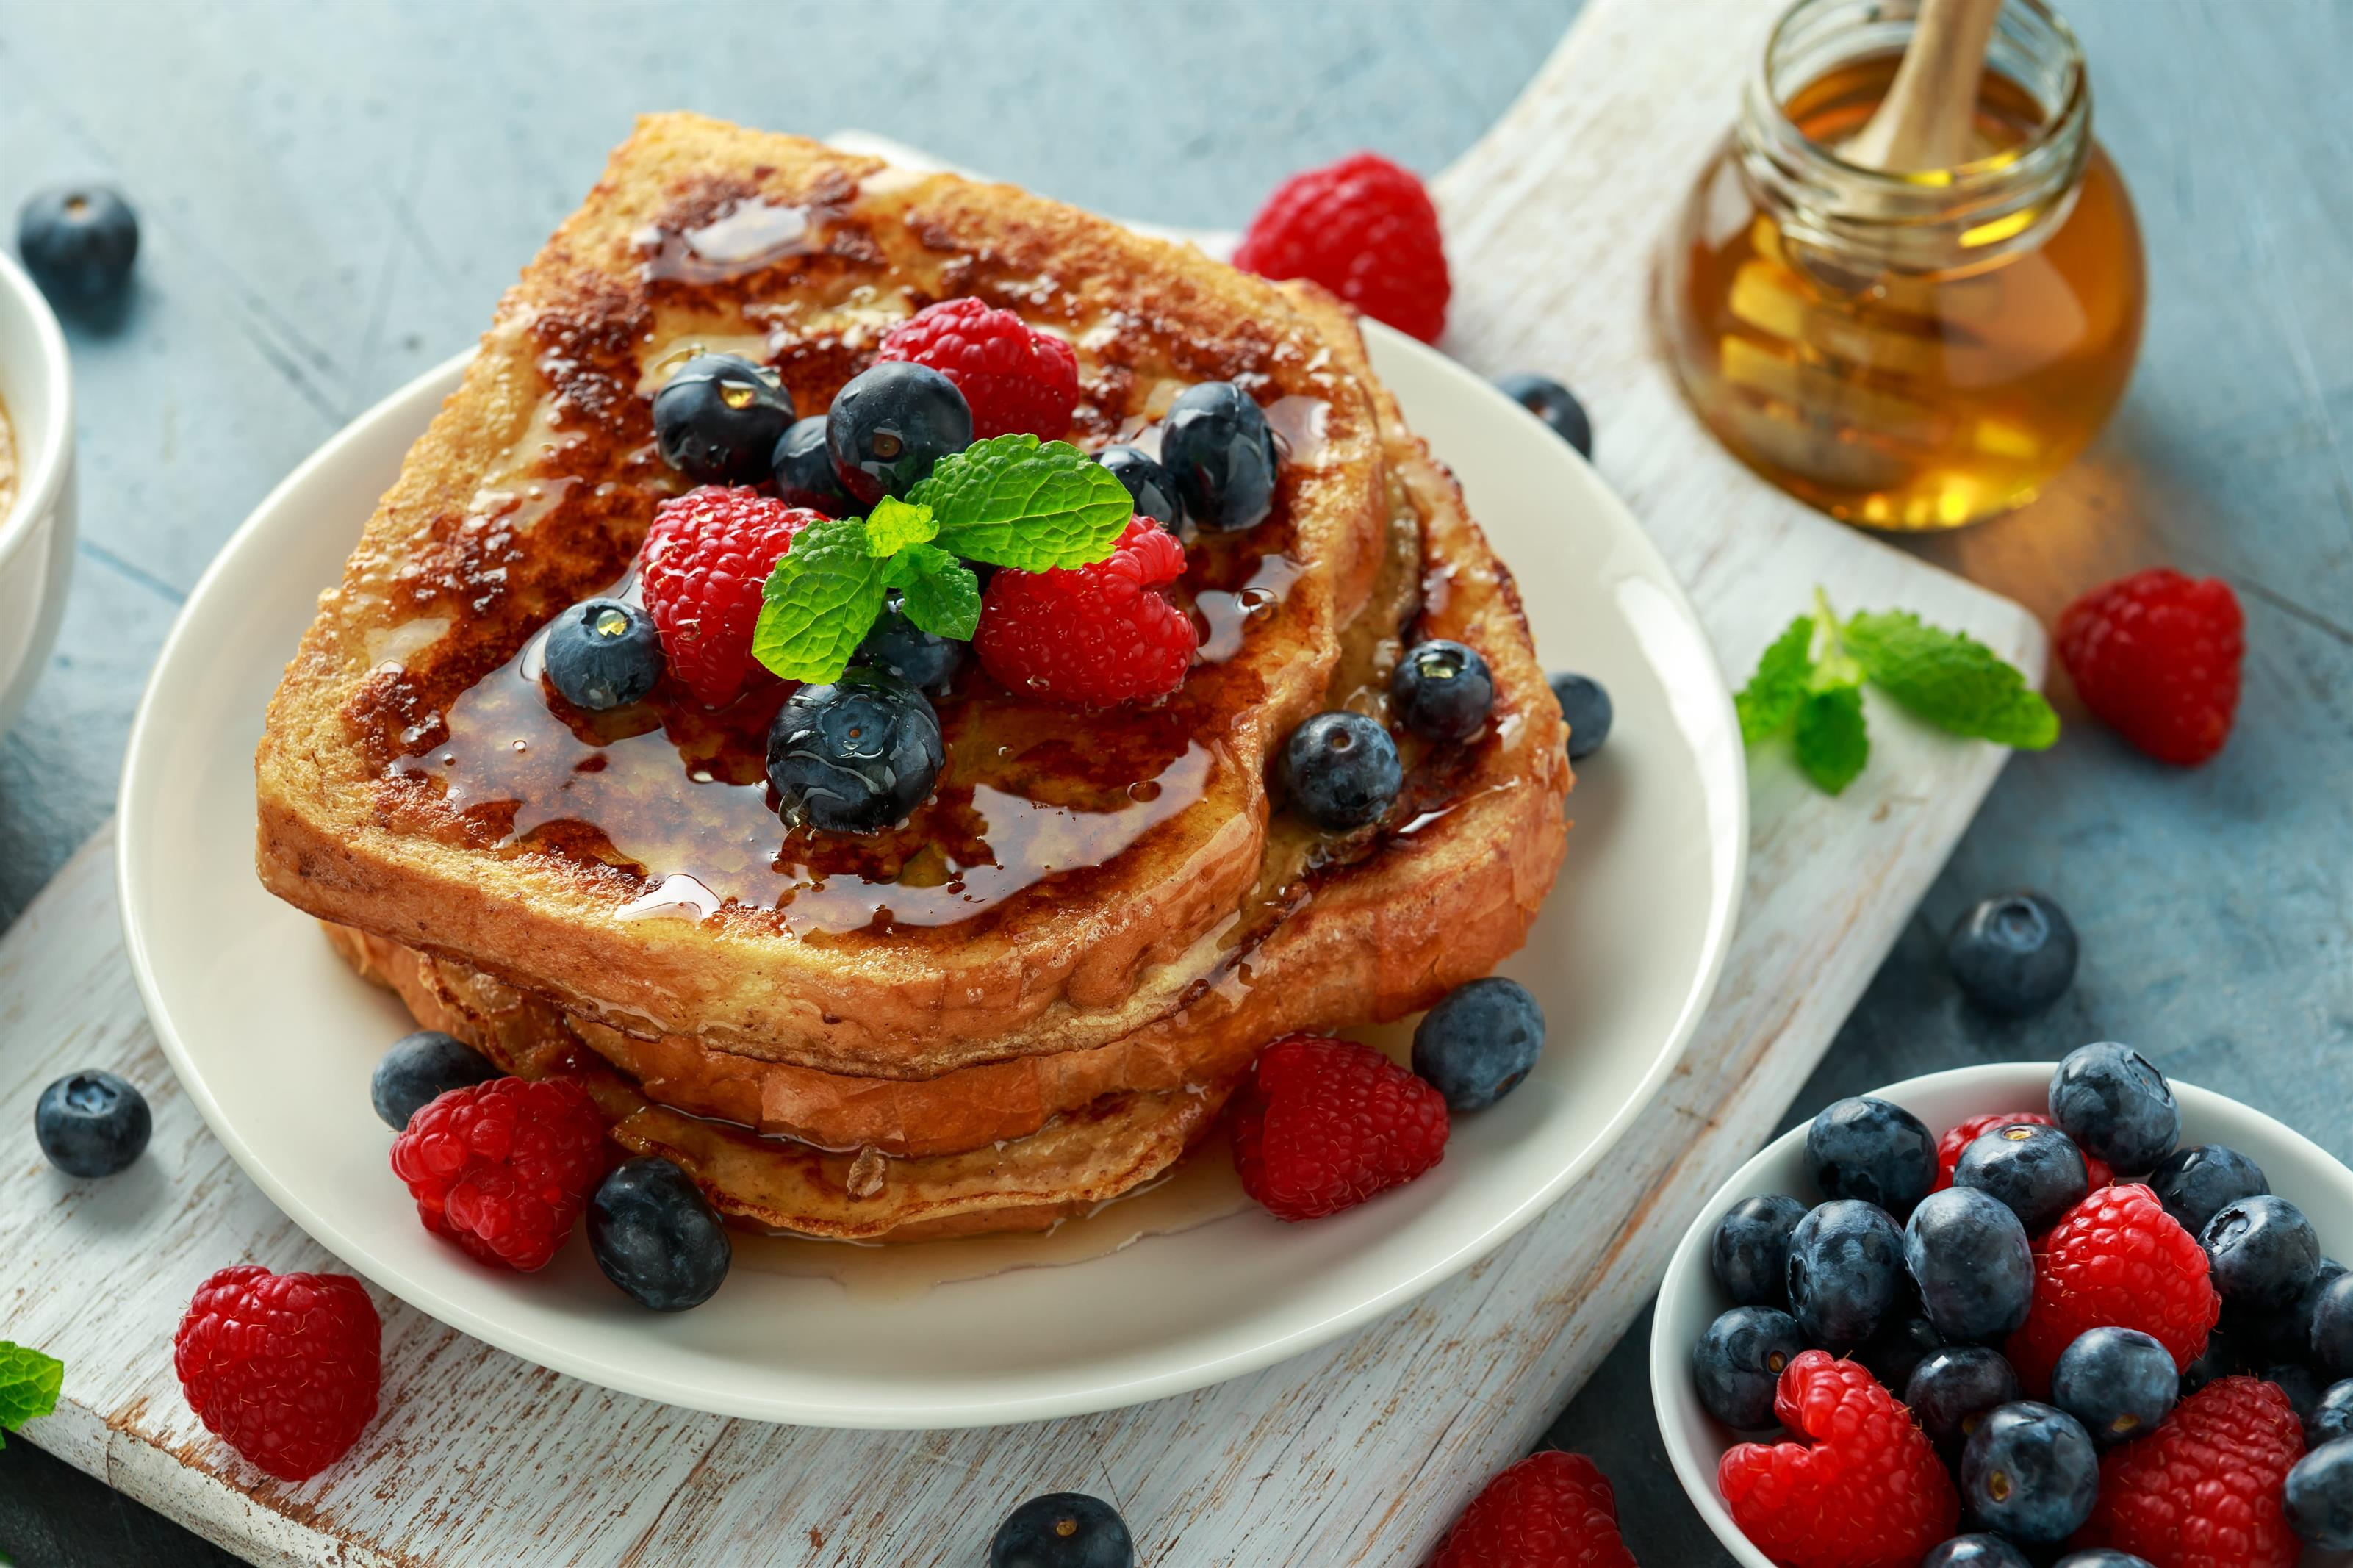 stack of pancakes topped with syrup, bananas, blueberries and strawberries